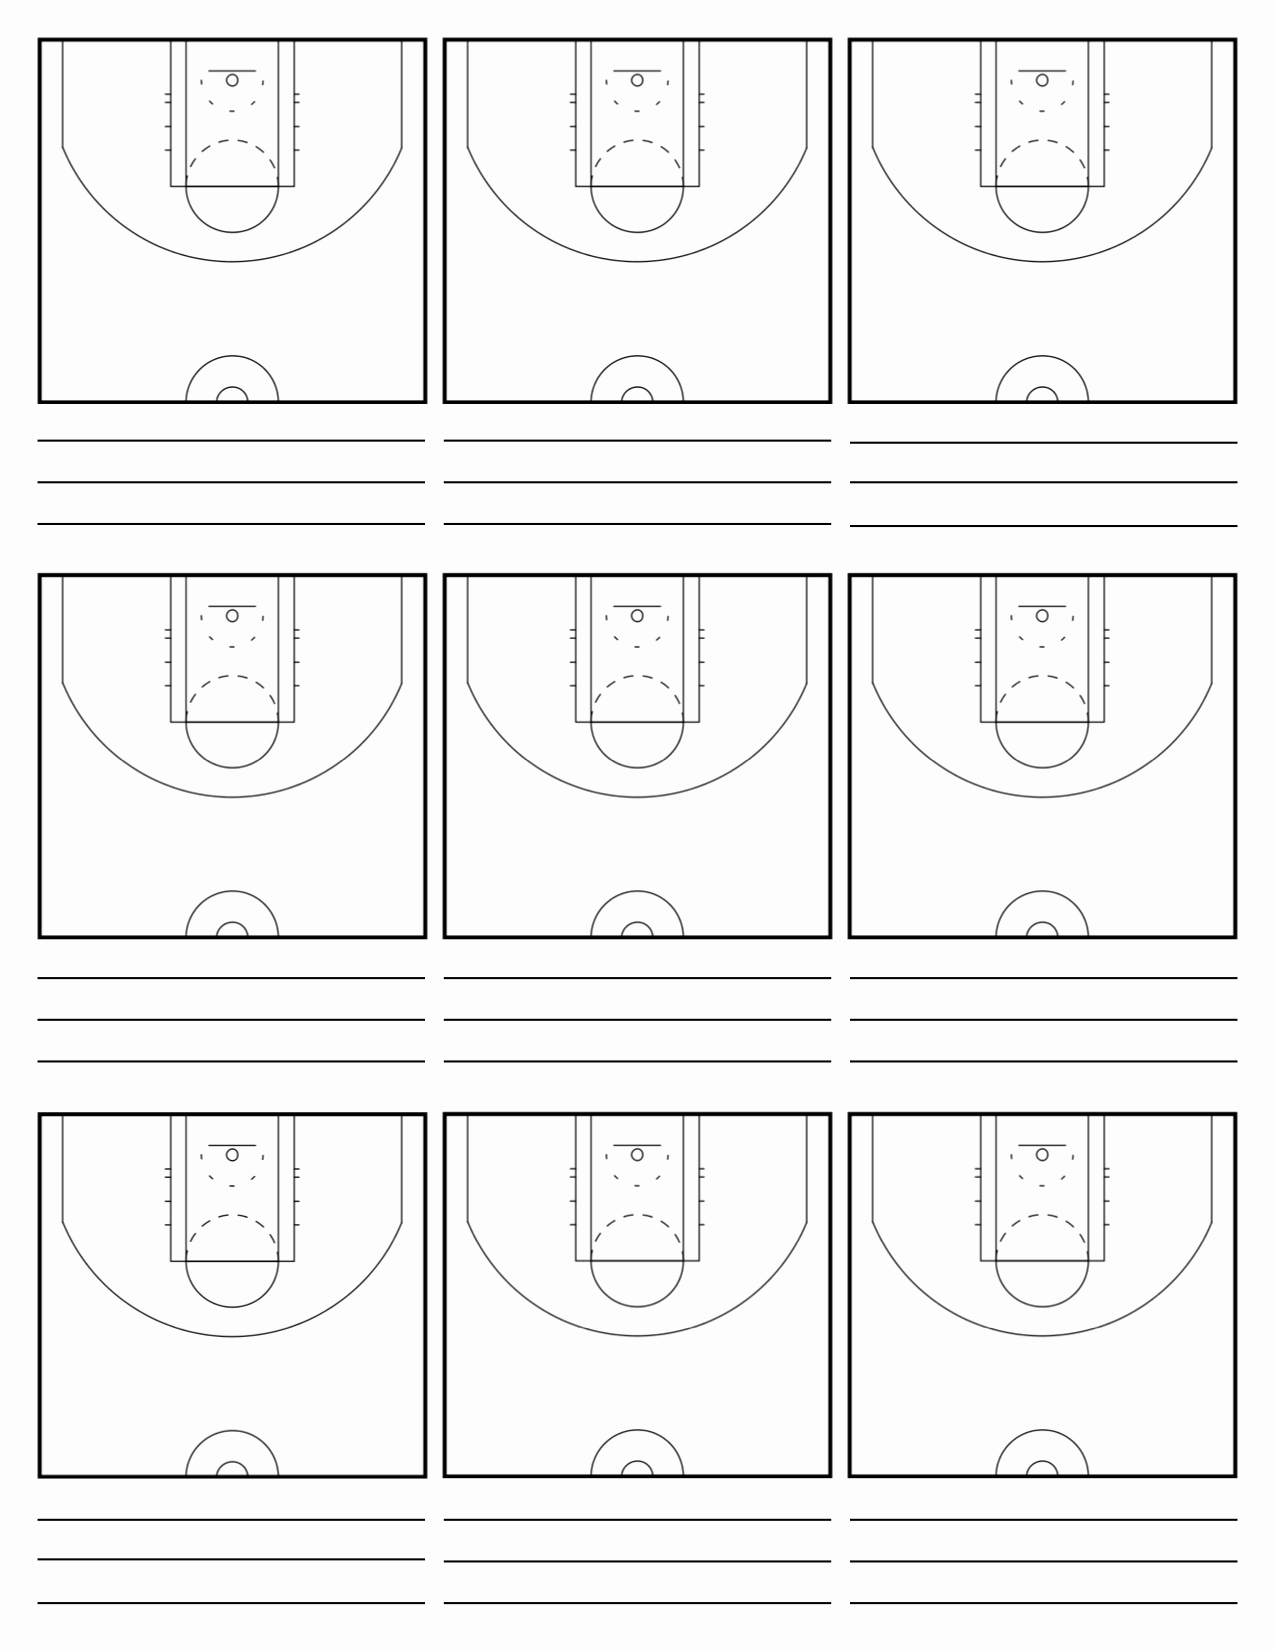 Blank Basketball Practice Plan Template Awesome 7 Best Of Basketball Court Diagrams for Plays